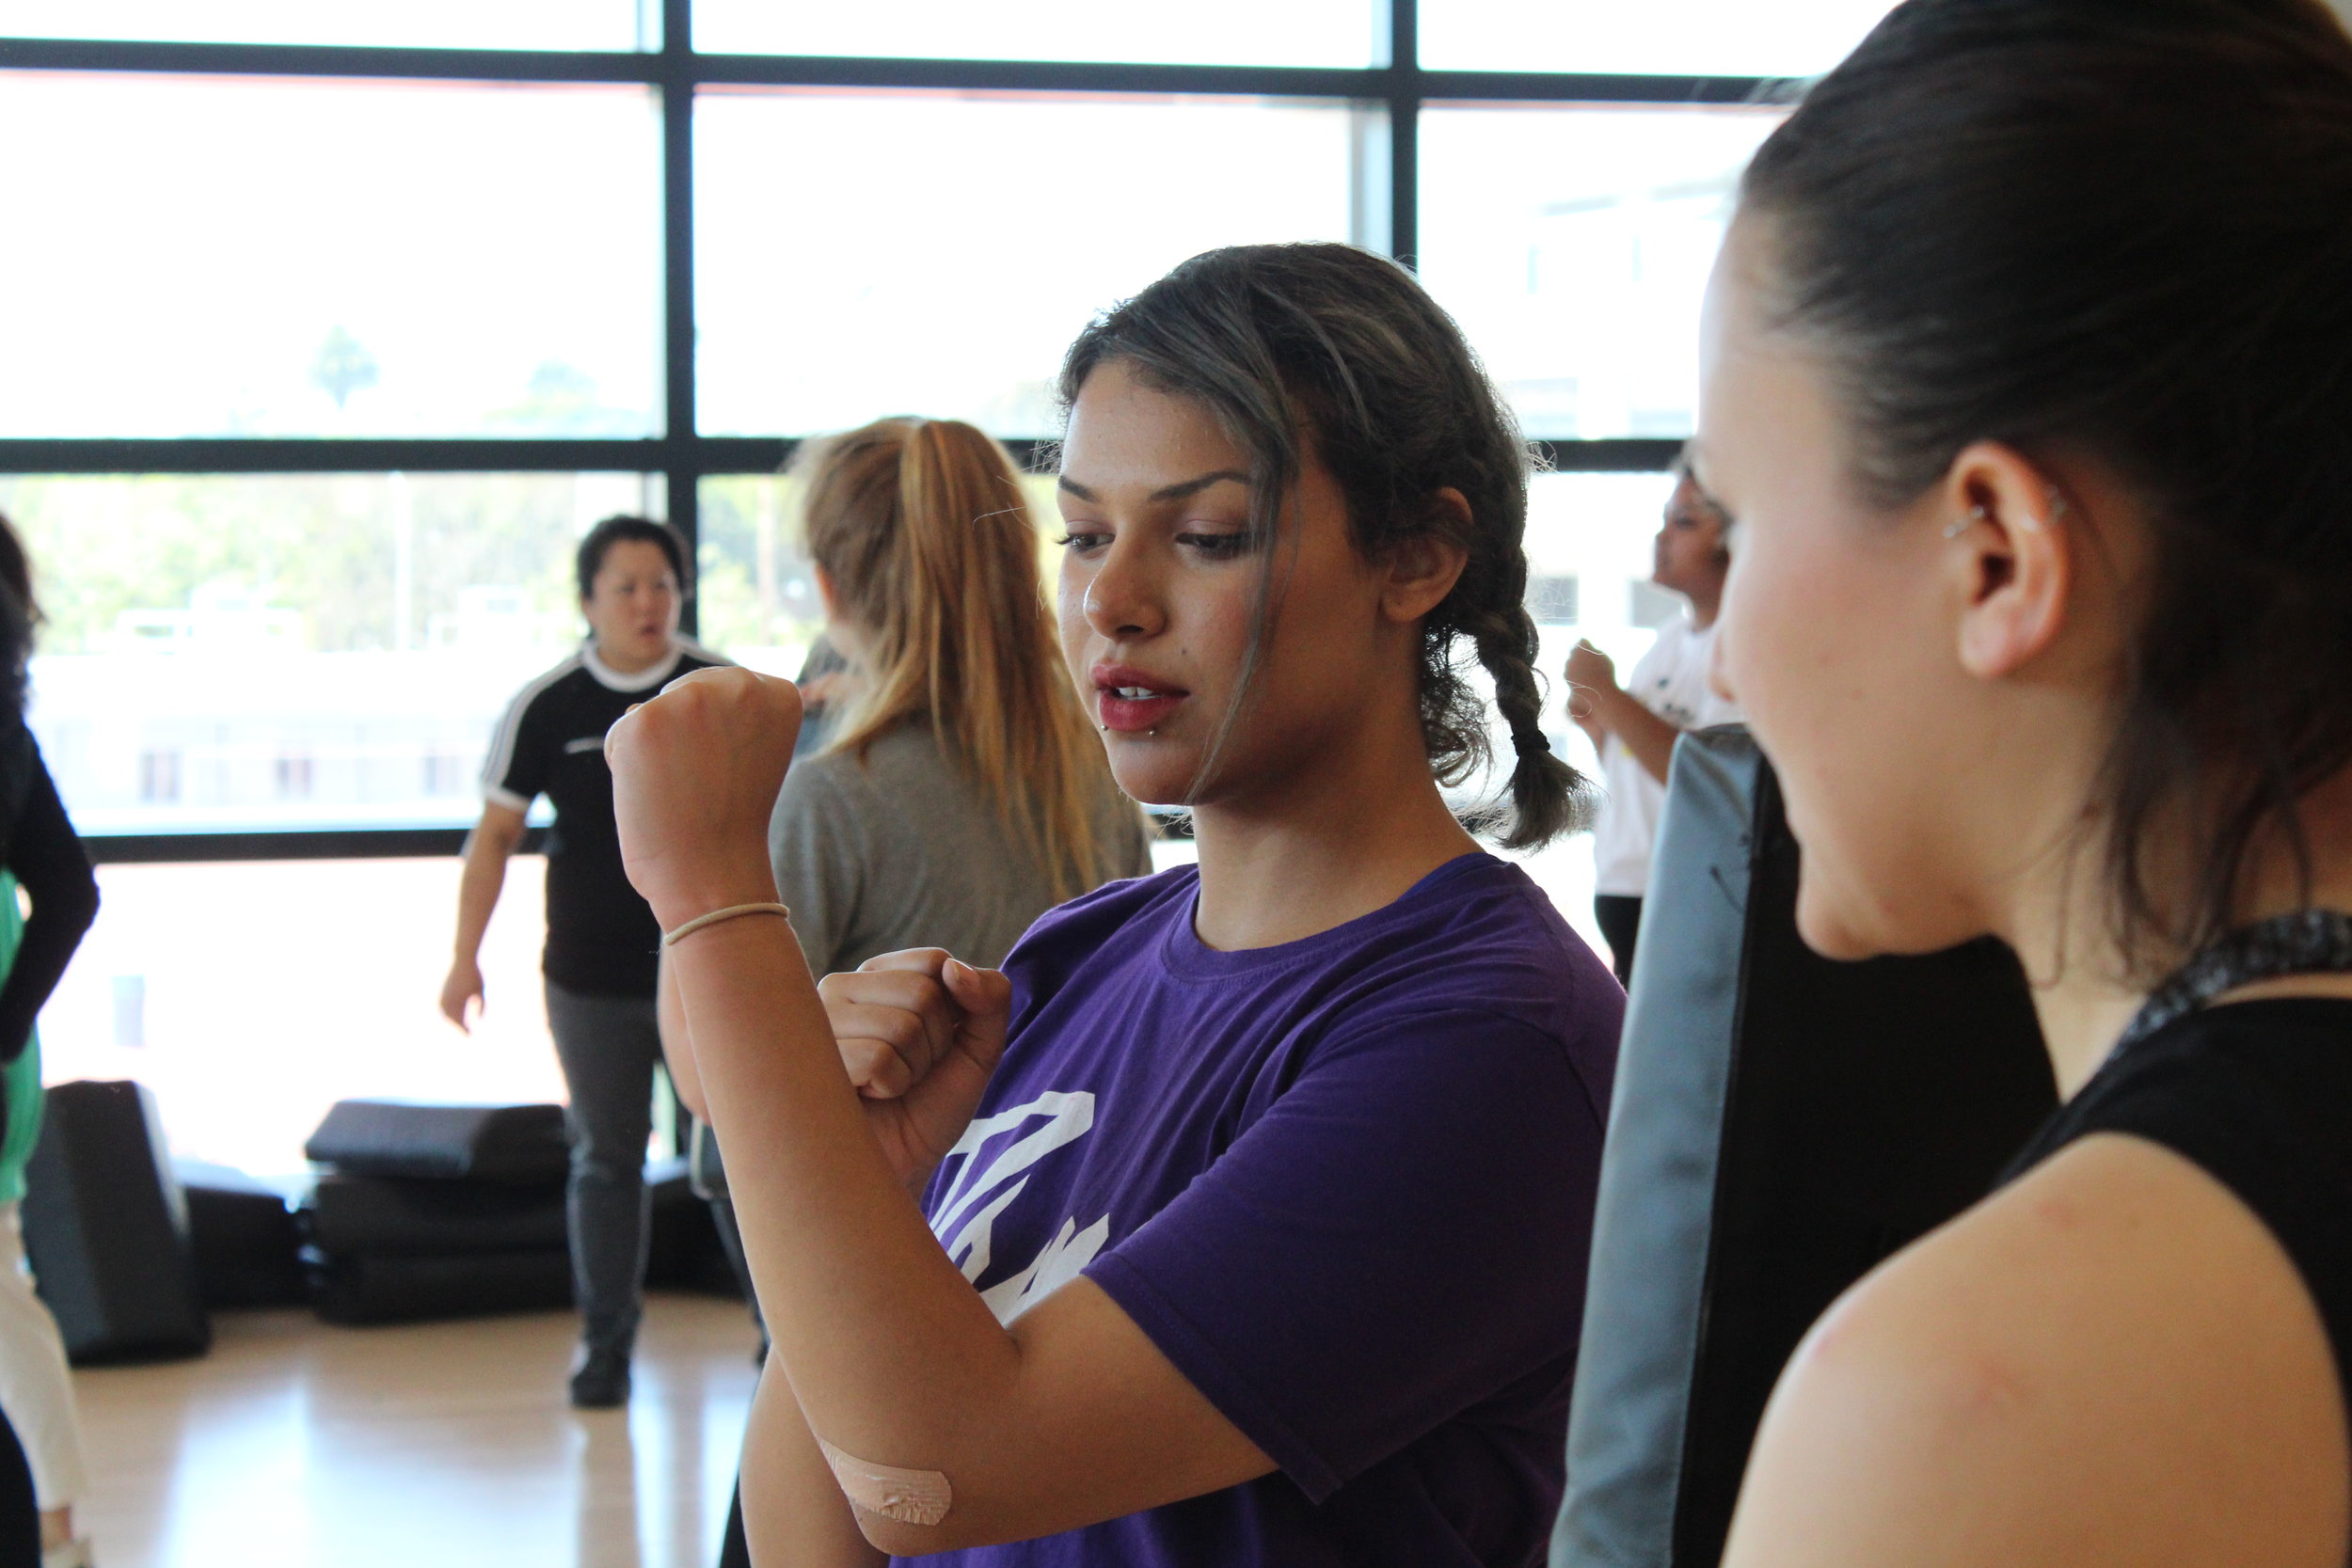 Santa Monica College students practice self-defense maneuvers in the Women's Self Defense course, taught by Jennifer Tanaka (back left), who has been practicing martial arts for 20 years, at Santa Monica College in Santa Monica. The course, KIN PE 41W, meets twice a week for 1.5 hours, and also comes with a semester-long provisional membership at the Kung Fu studio White Tiger, where Tanaka is a student along with fellow SMC Self Defense Professor Blaine Eastcott. (Evan Minniti/The Corsair)